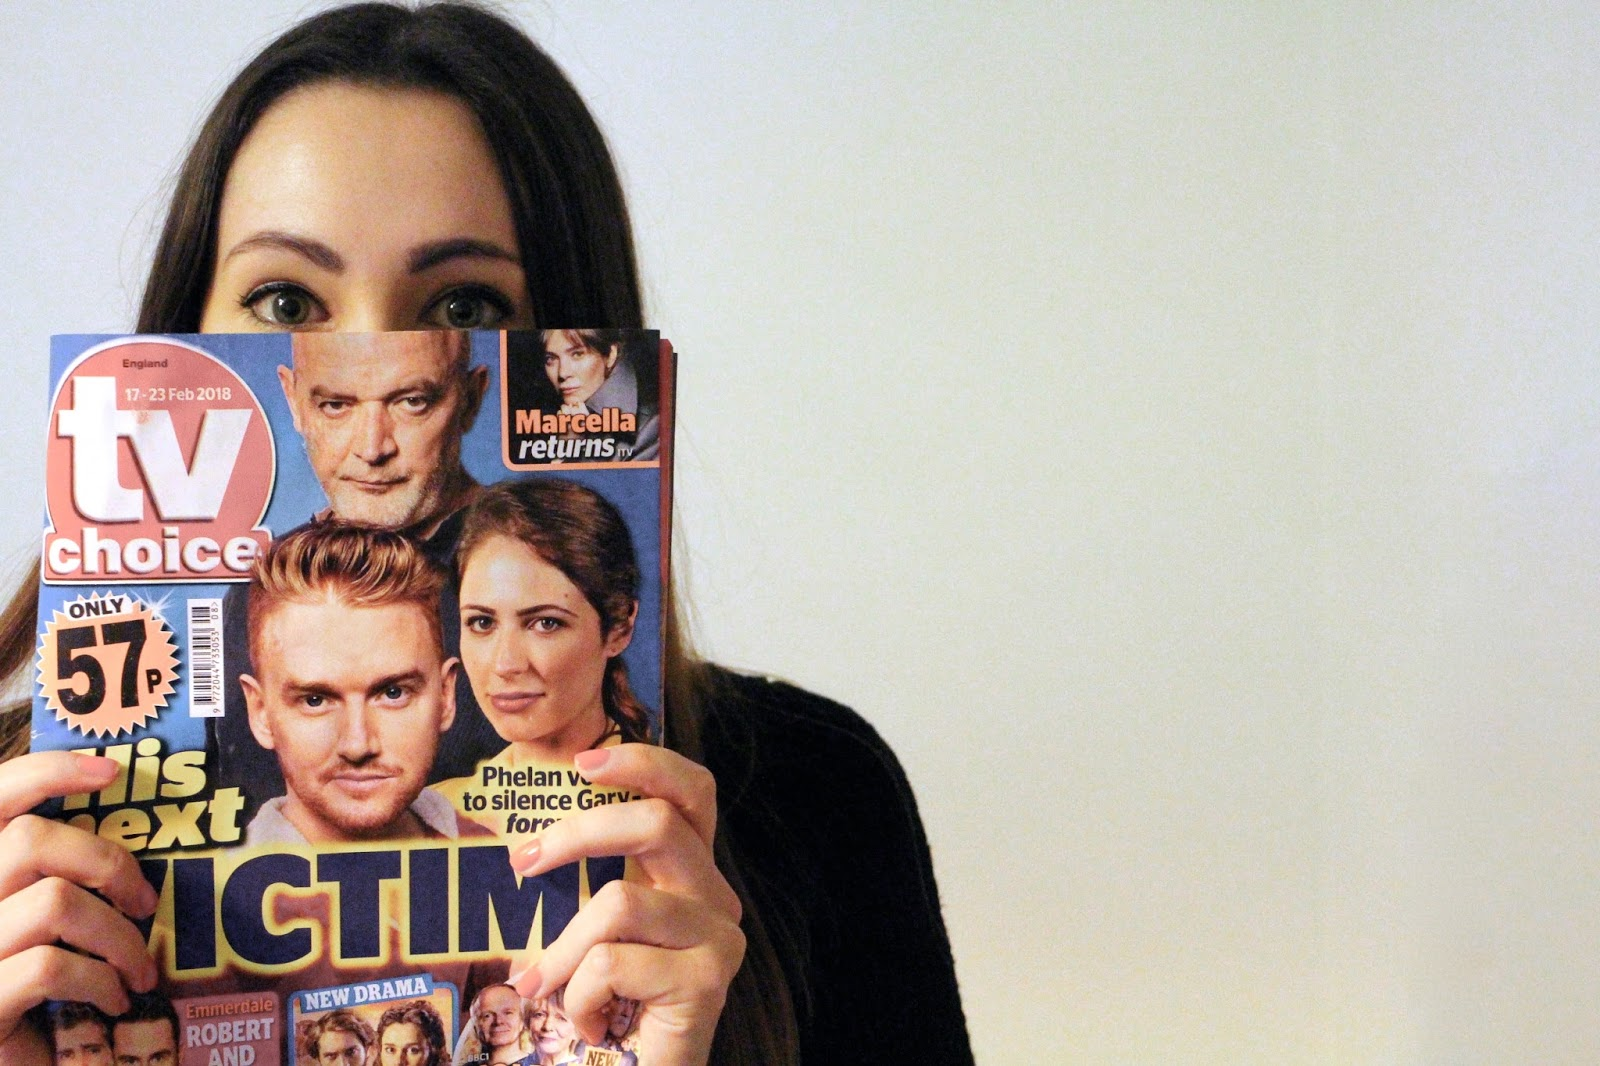 Blogger with a TV guide on front of face